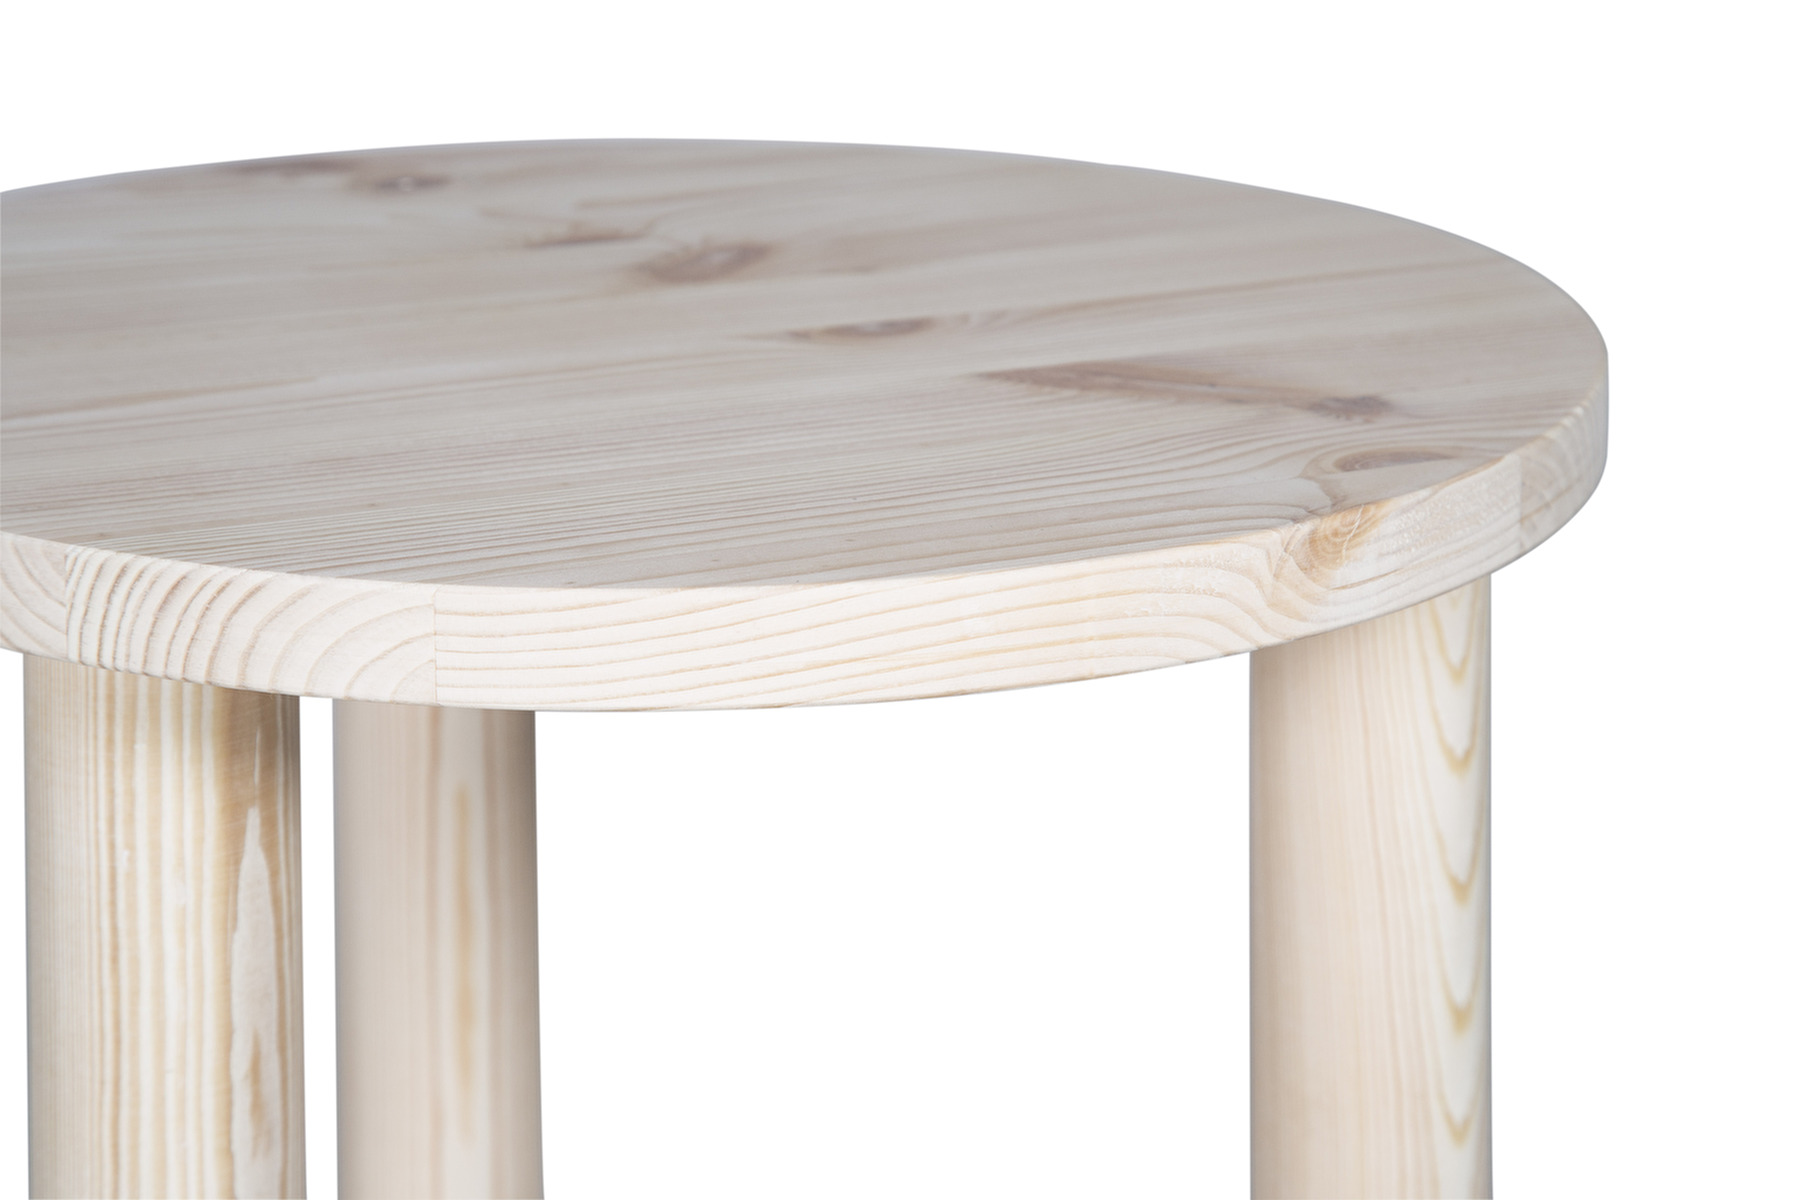 Side table Simple ELENSEN Home Design